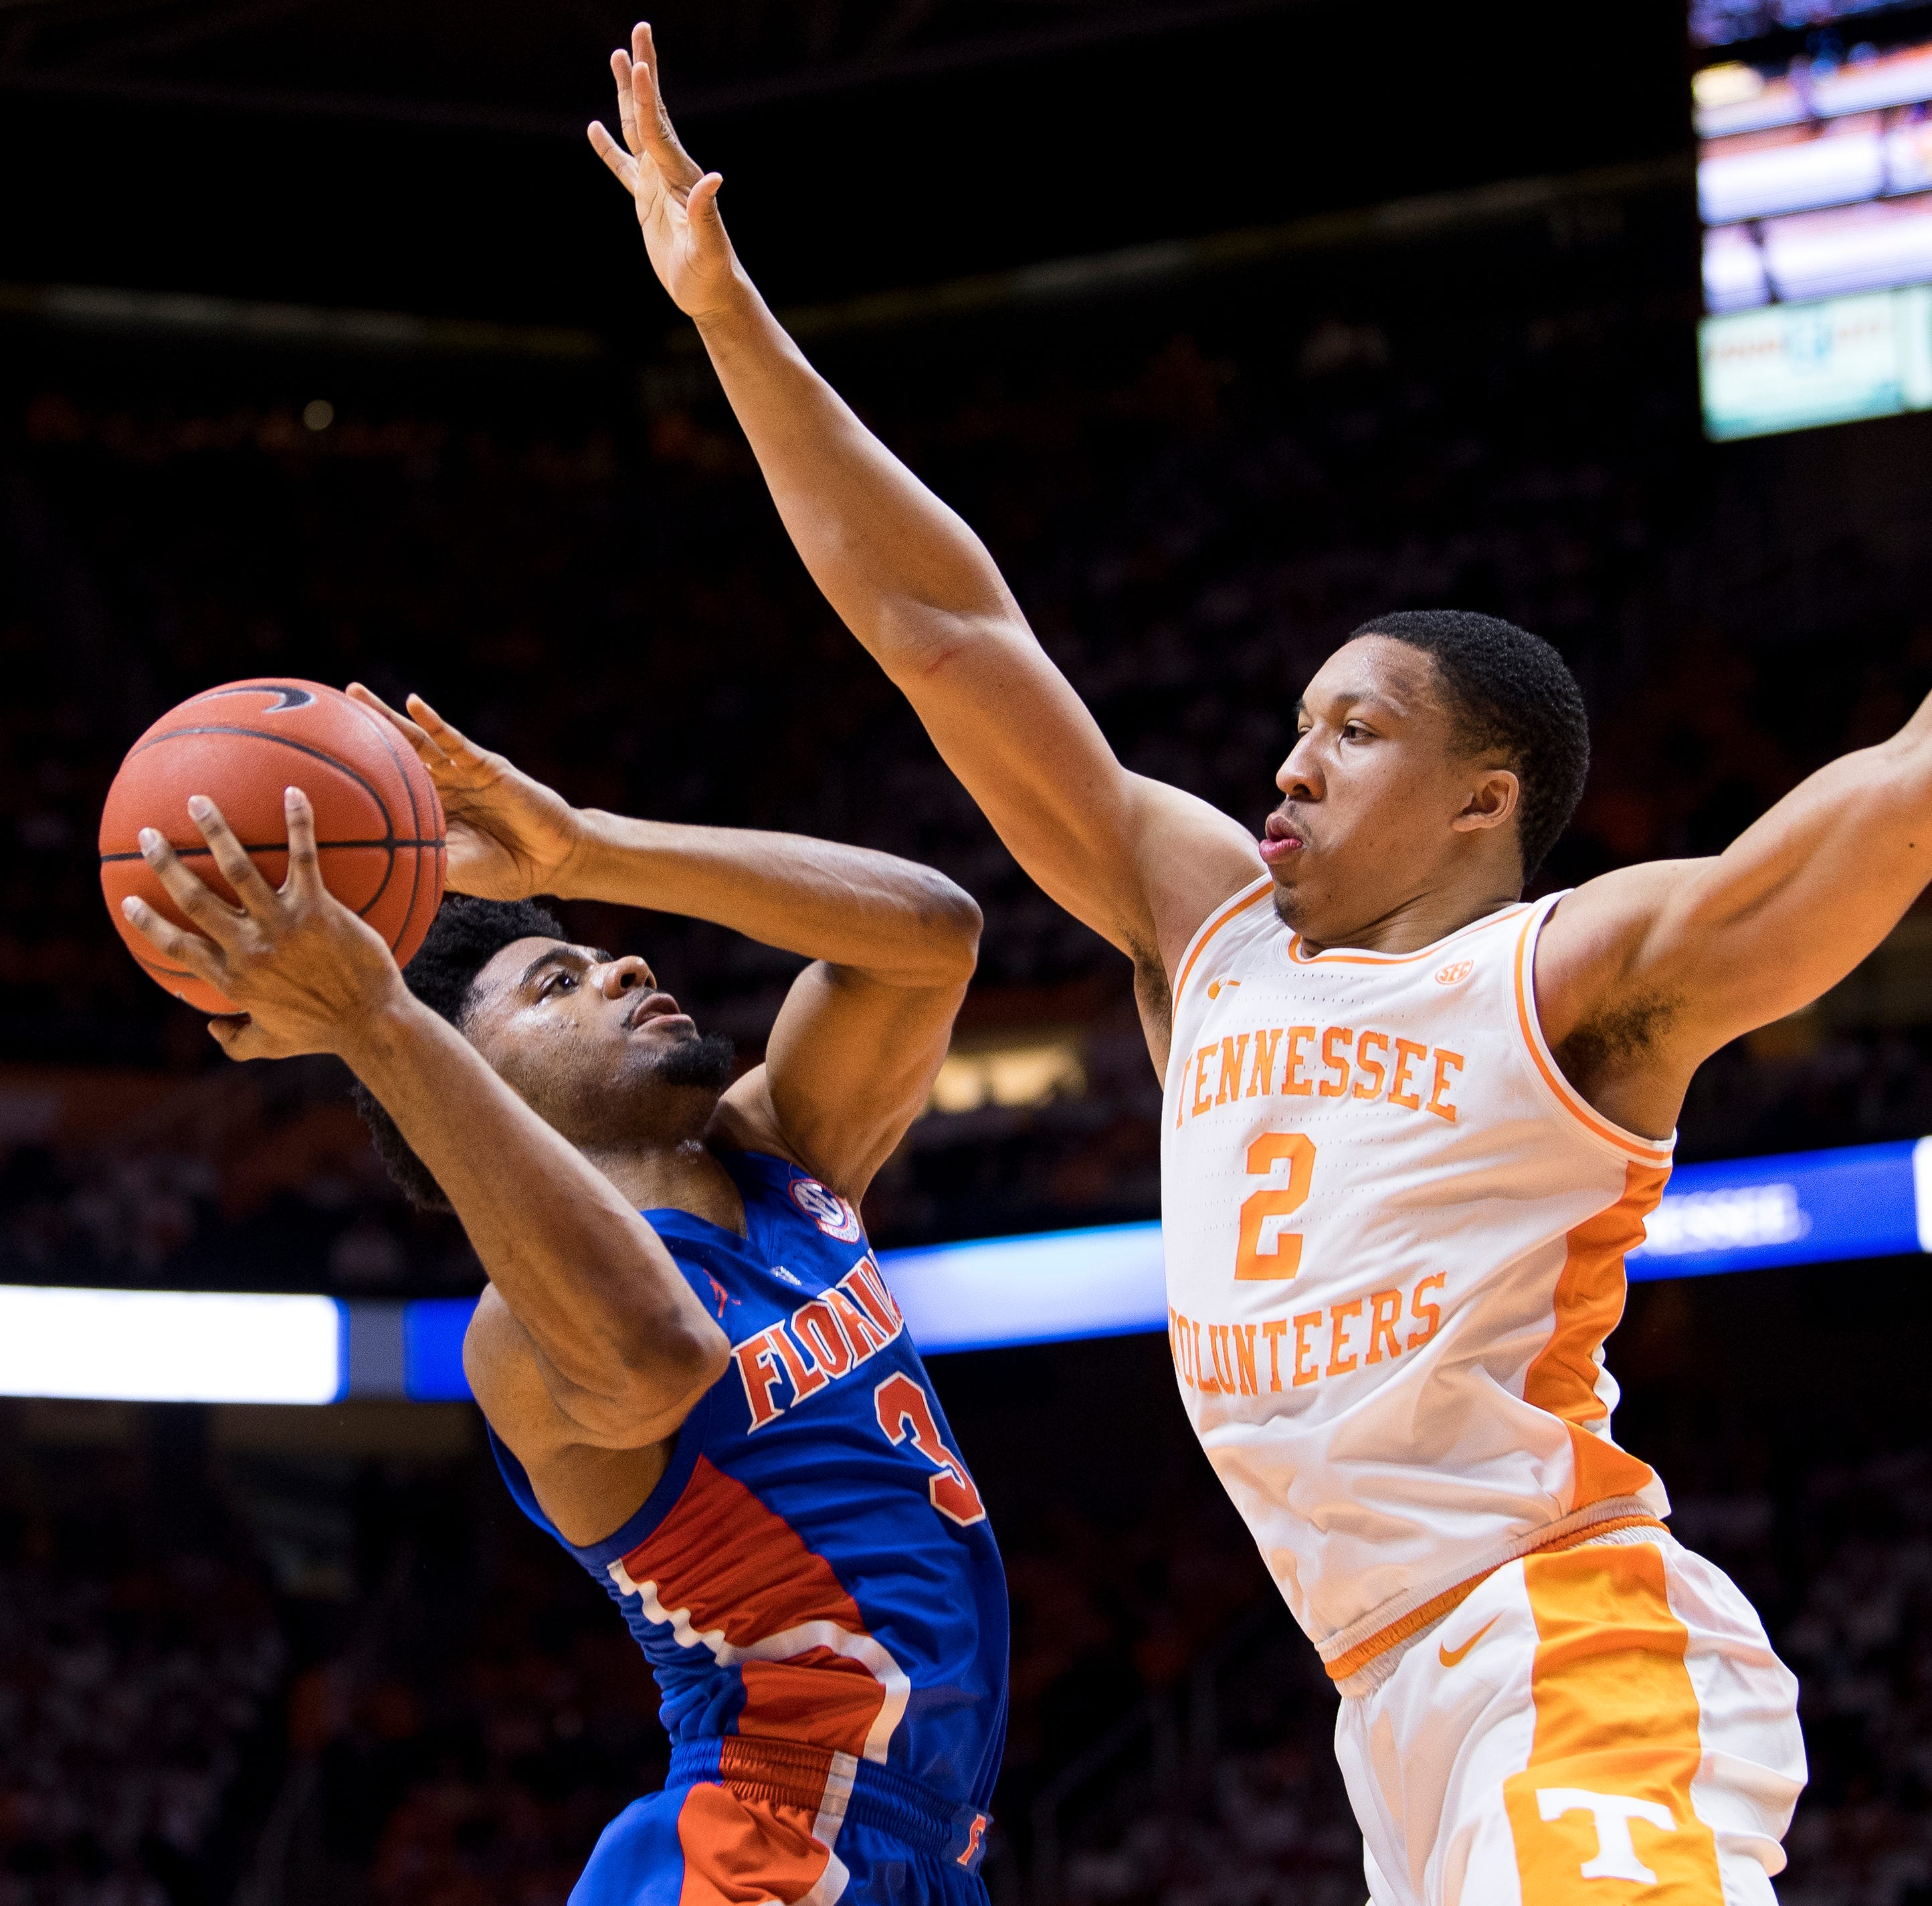 It's easy to defend UT Vols basketball's No. 1 ranking, especially when theirs is so good